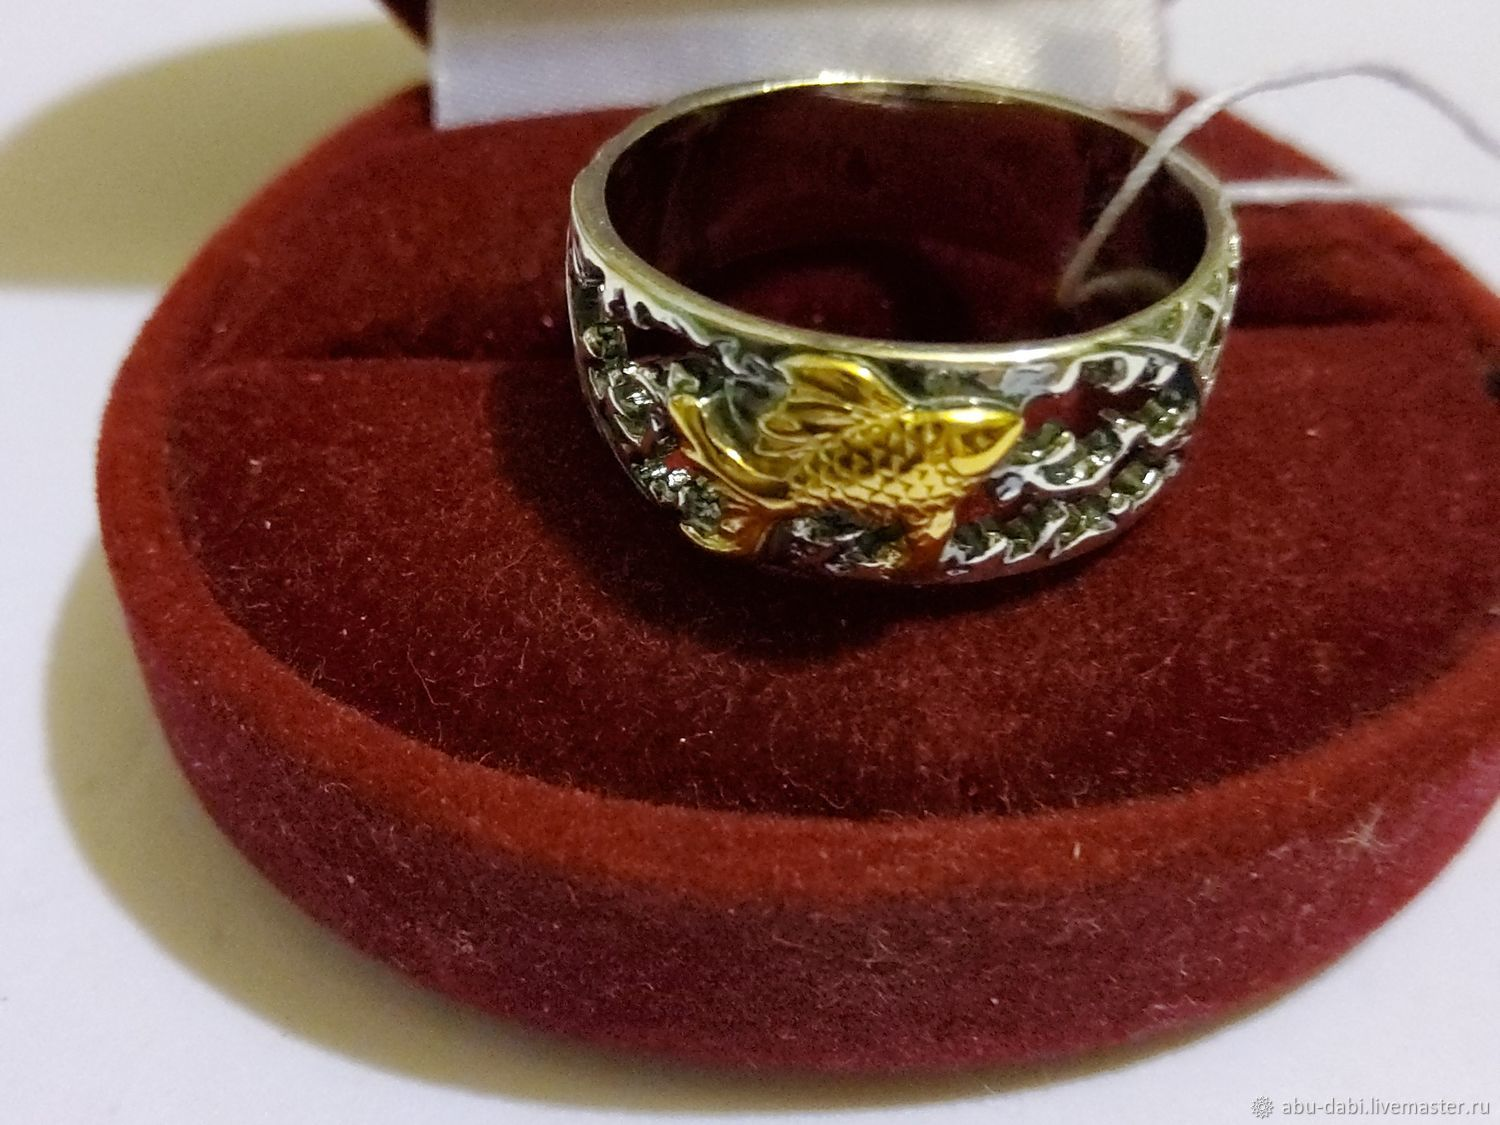 GOLD FISH ring 925 silver, new, seal,1995, Vintage ring, Moscow,  Фото №1